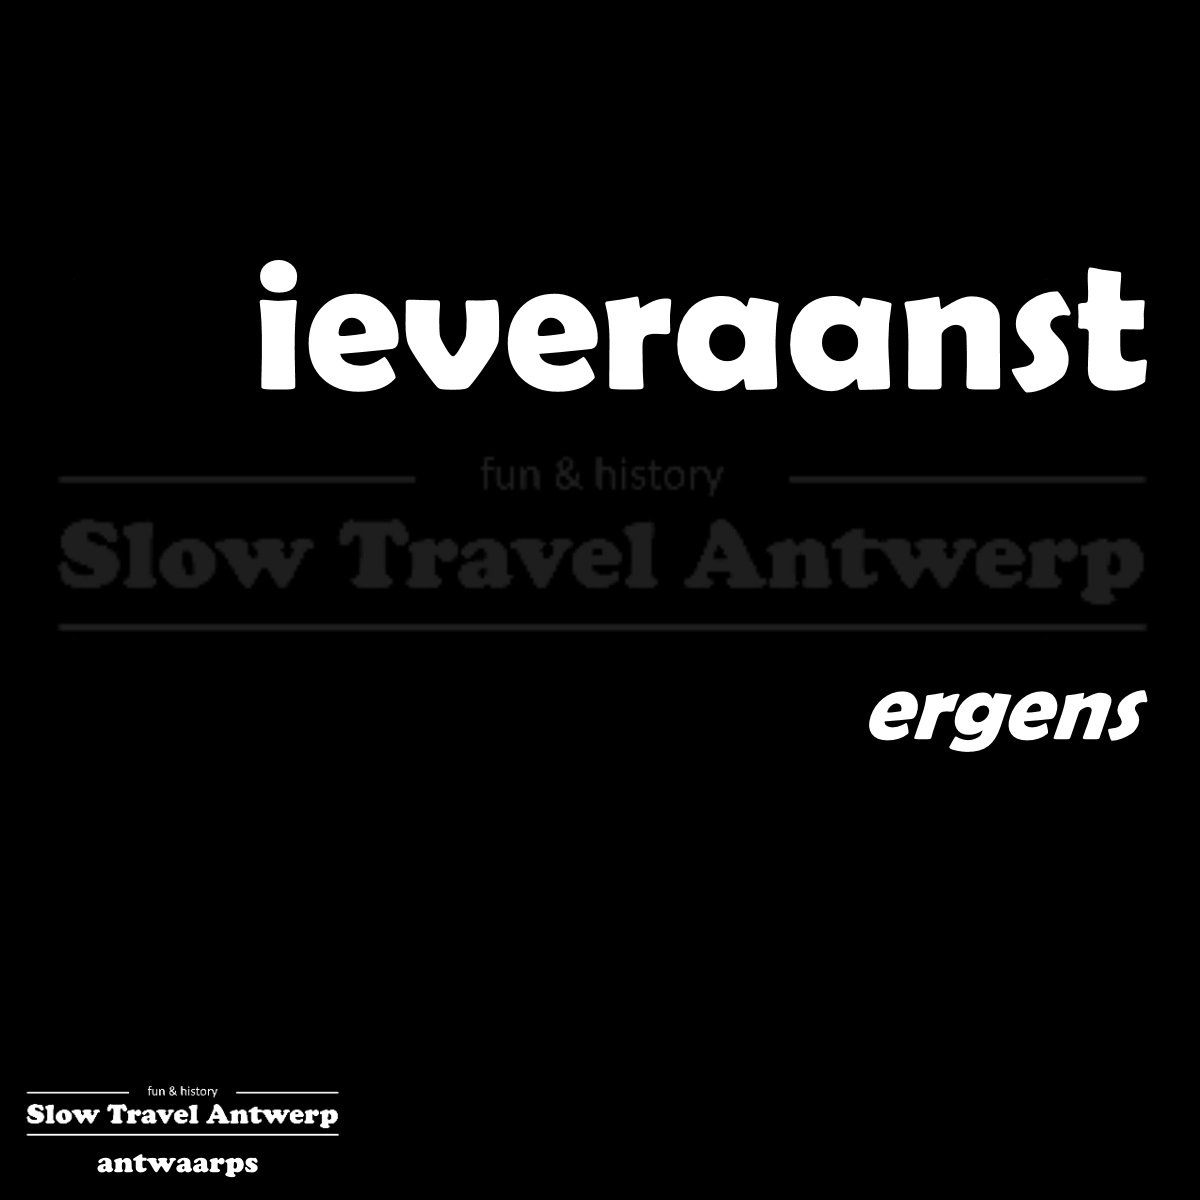 ieveraanst – ergens – somewhere